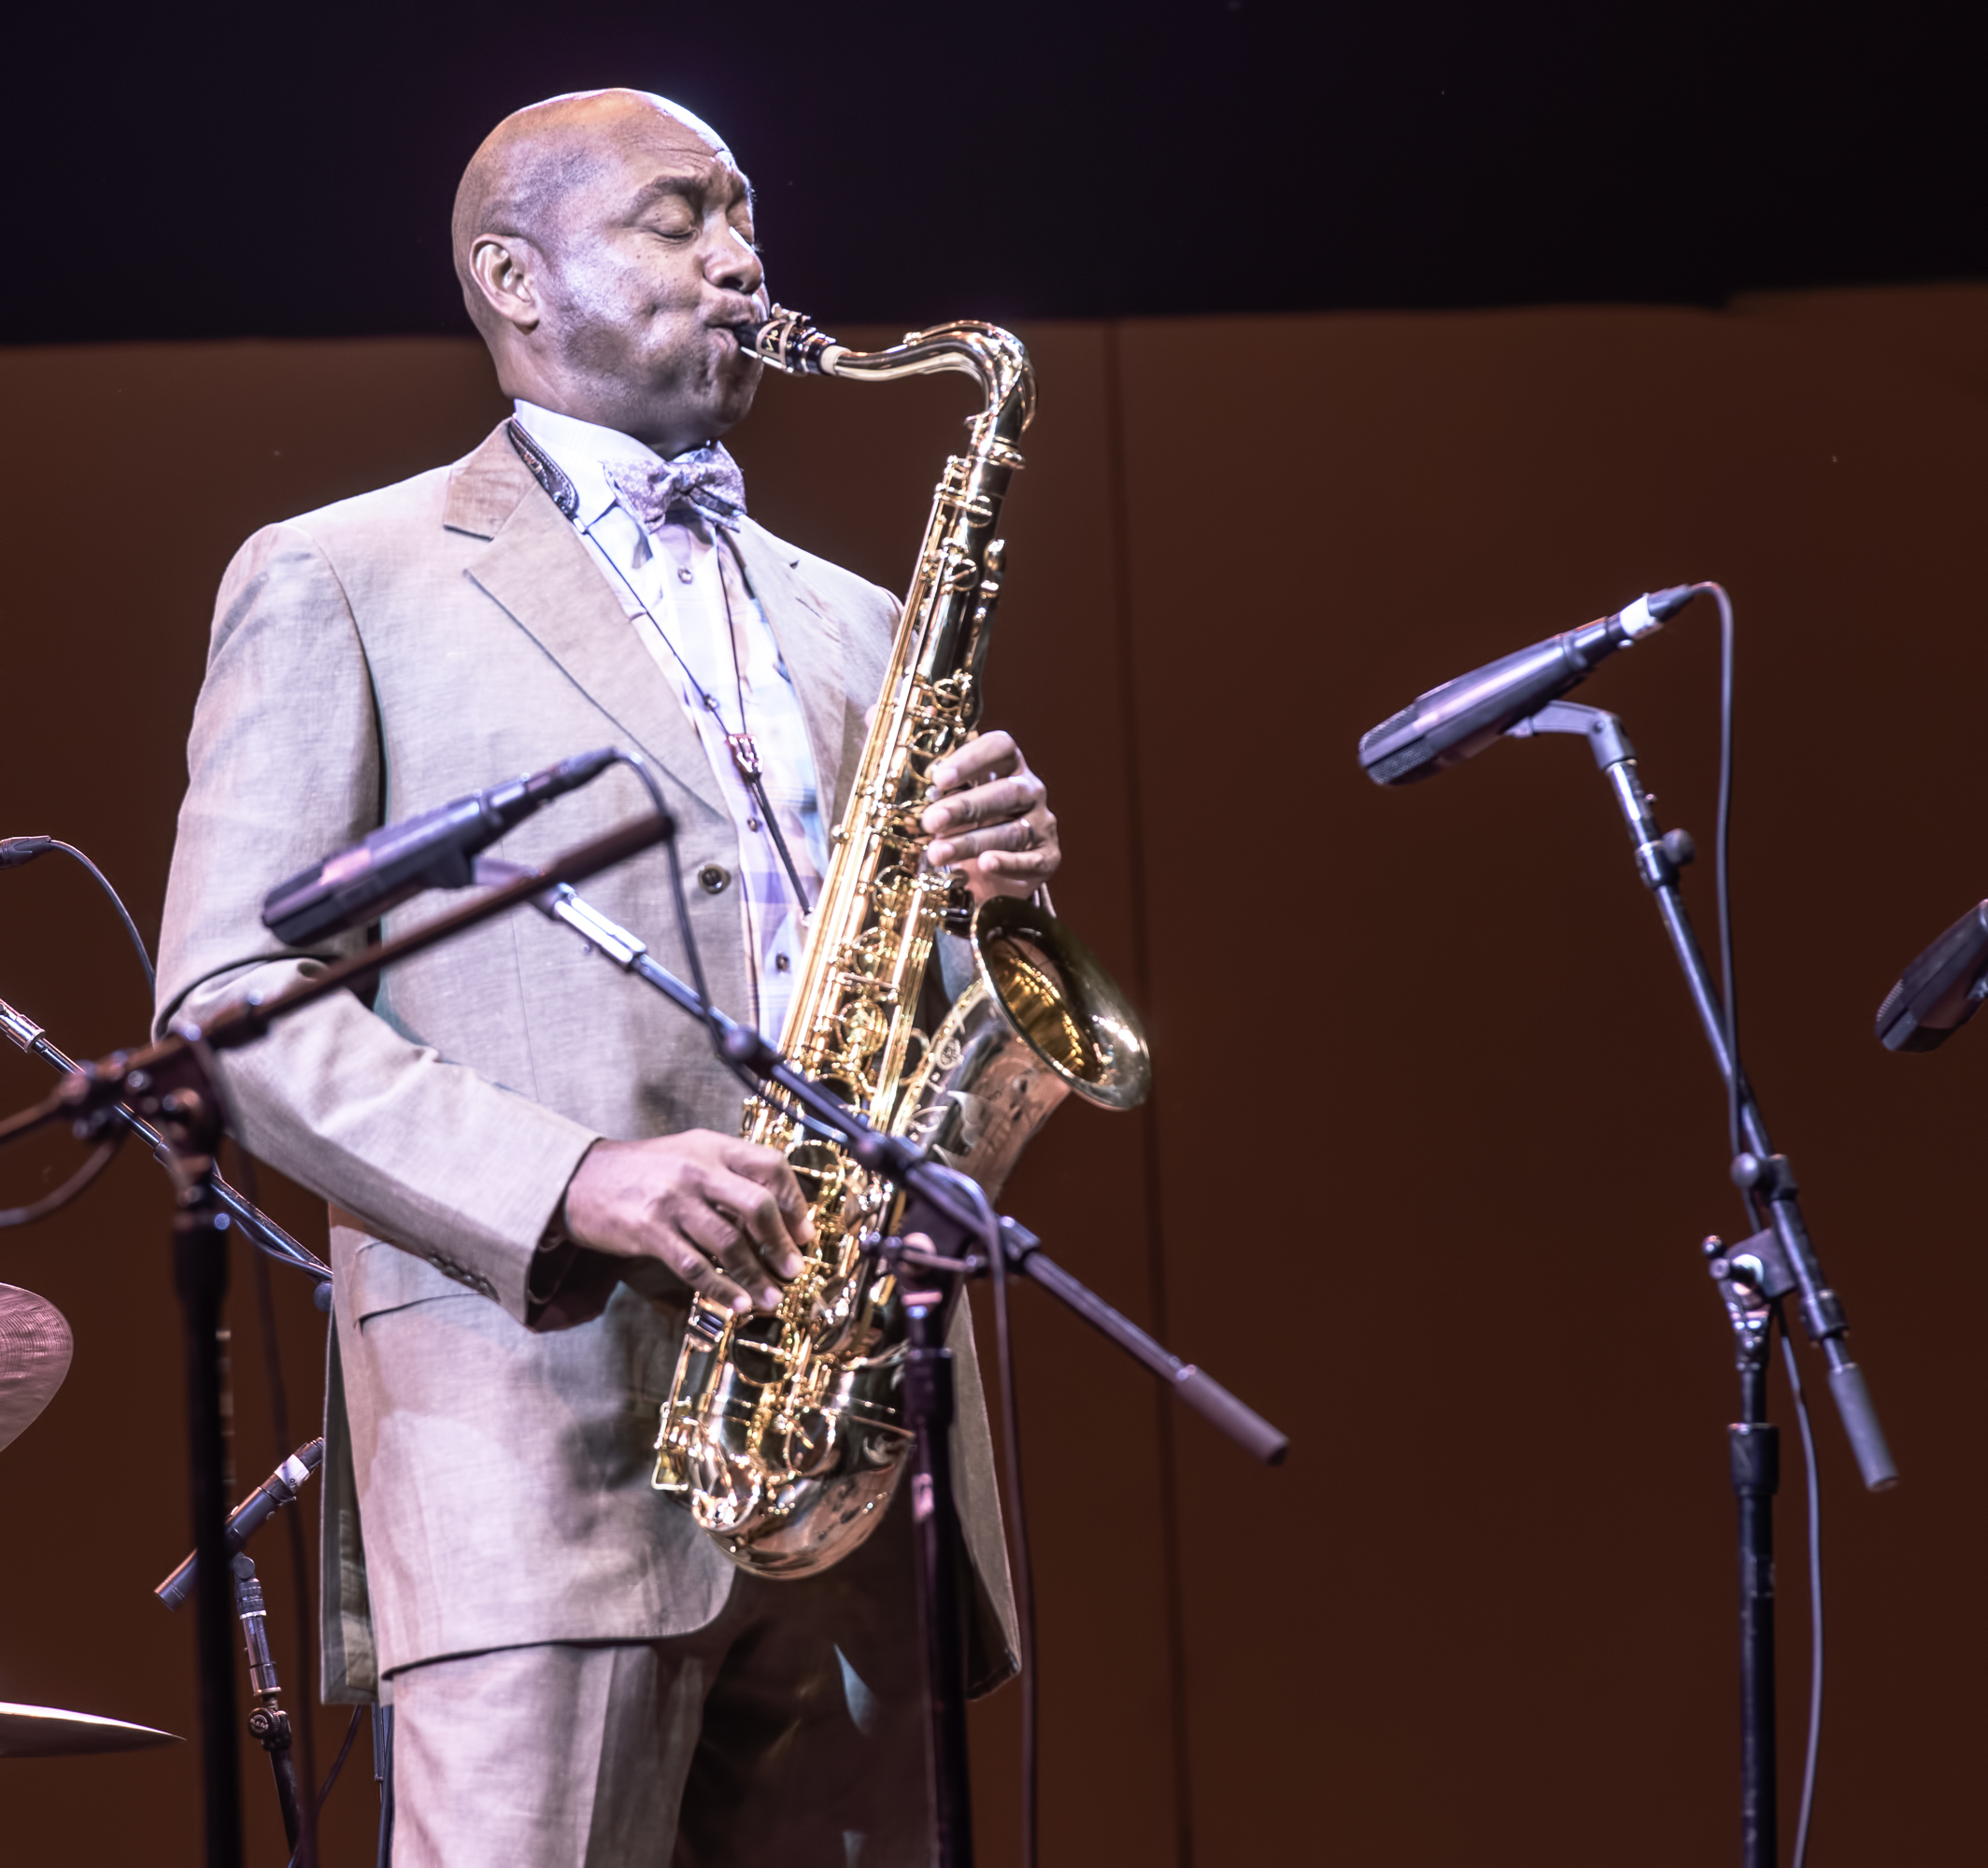 Branford Marsalis with A Tribute to Sonny Rollins at the Monterey Jazz Festival